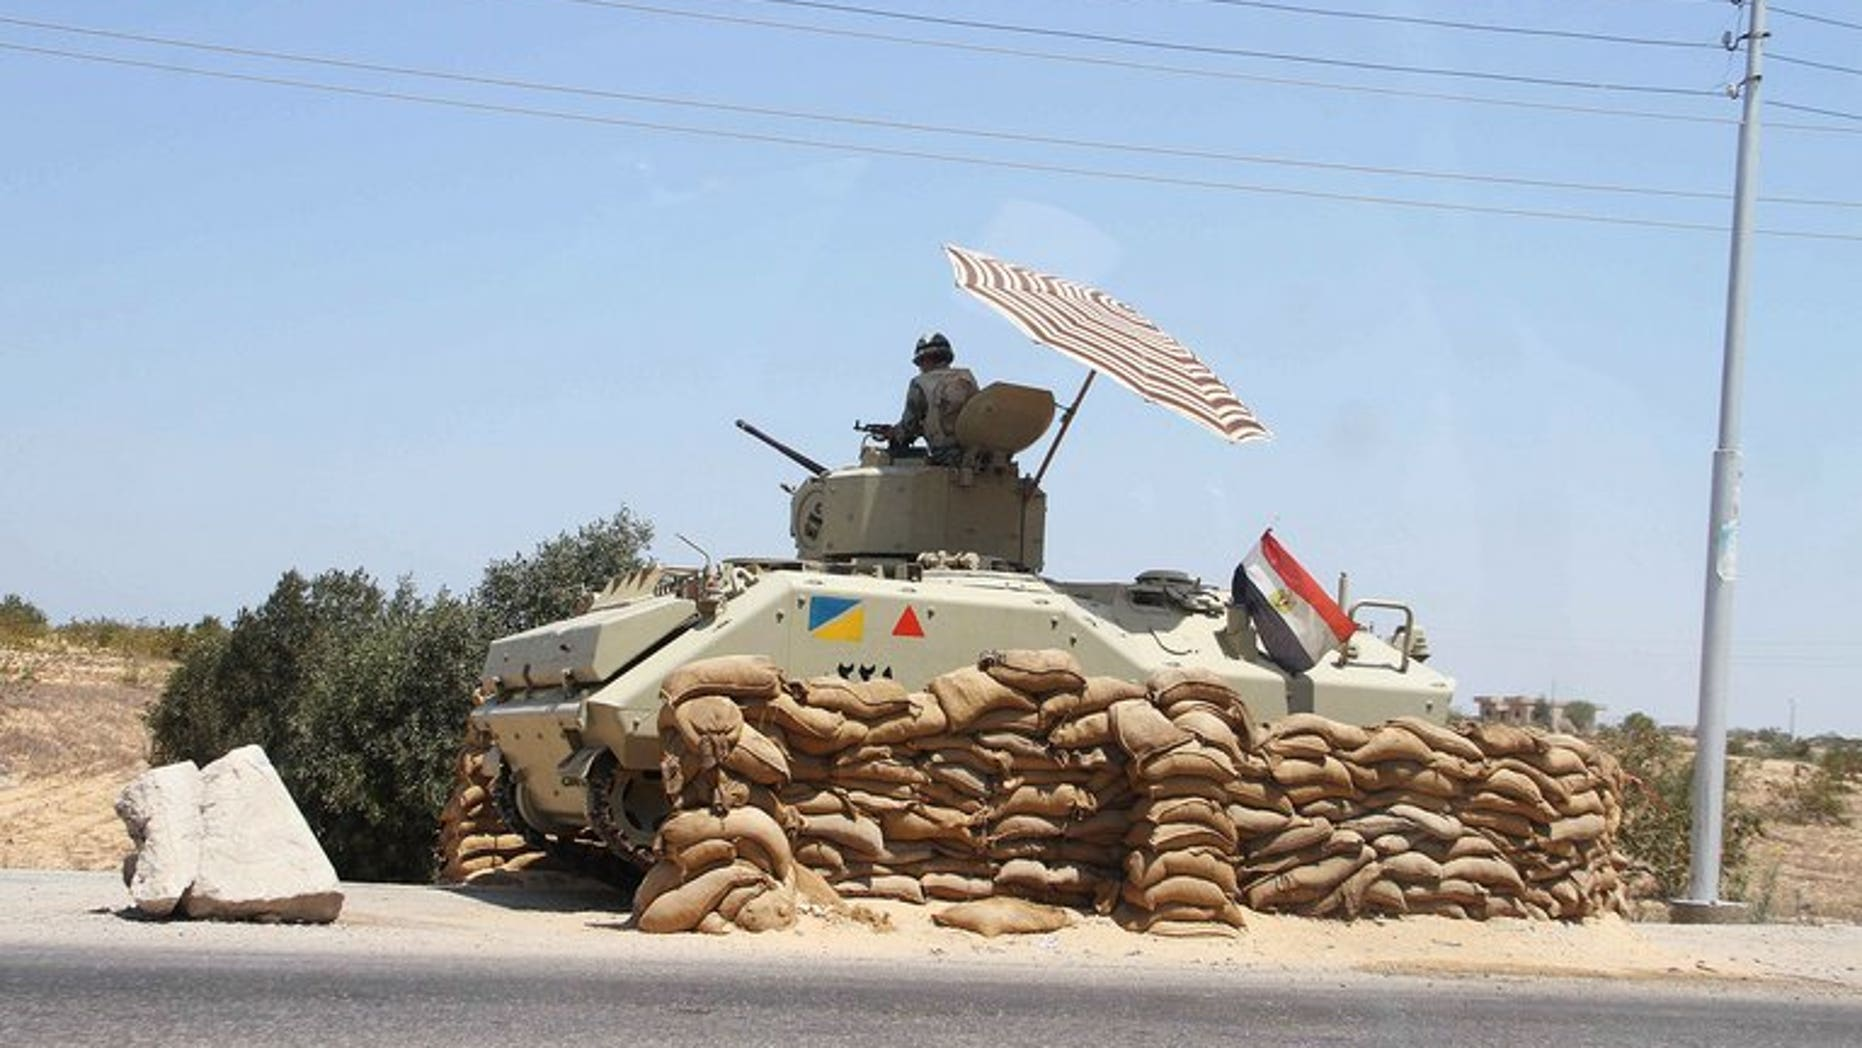 An Egyptian army vehicle in Sinai close to the Rafah border crossing. A Coptic Christian man was found decapitated on Thursday in Egypt's Sinai peninsula five days after he was kidnappped by gunmen, security officials and witnesses told AFP.